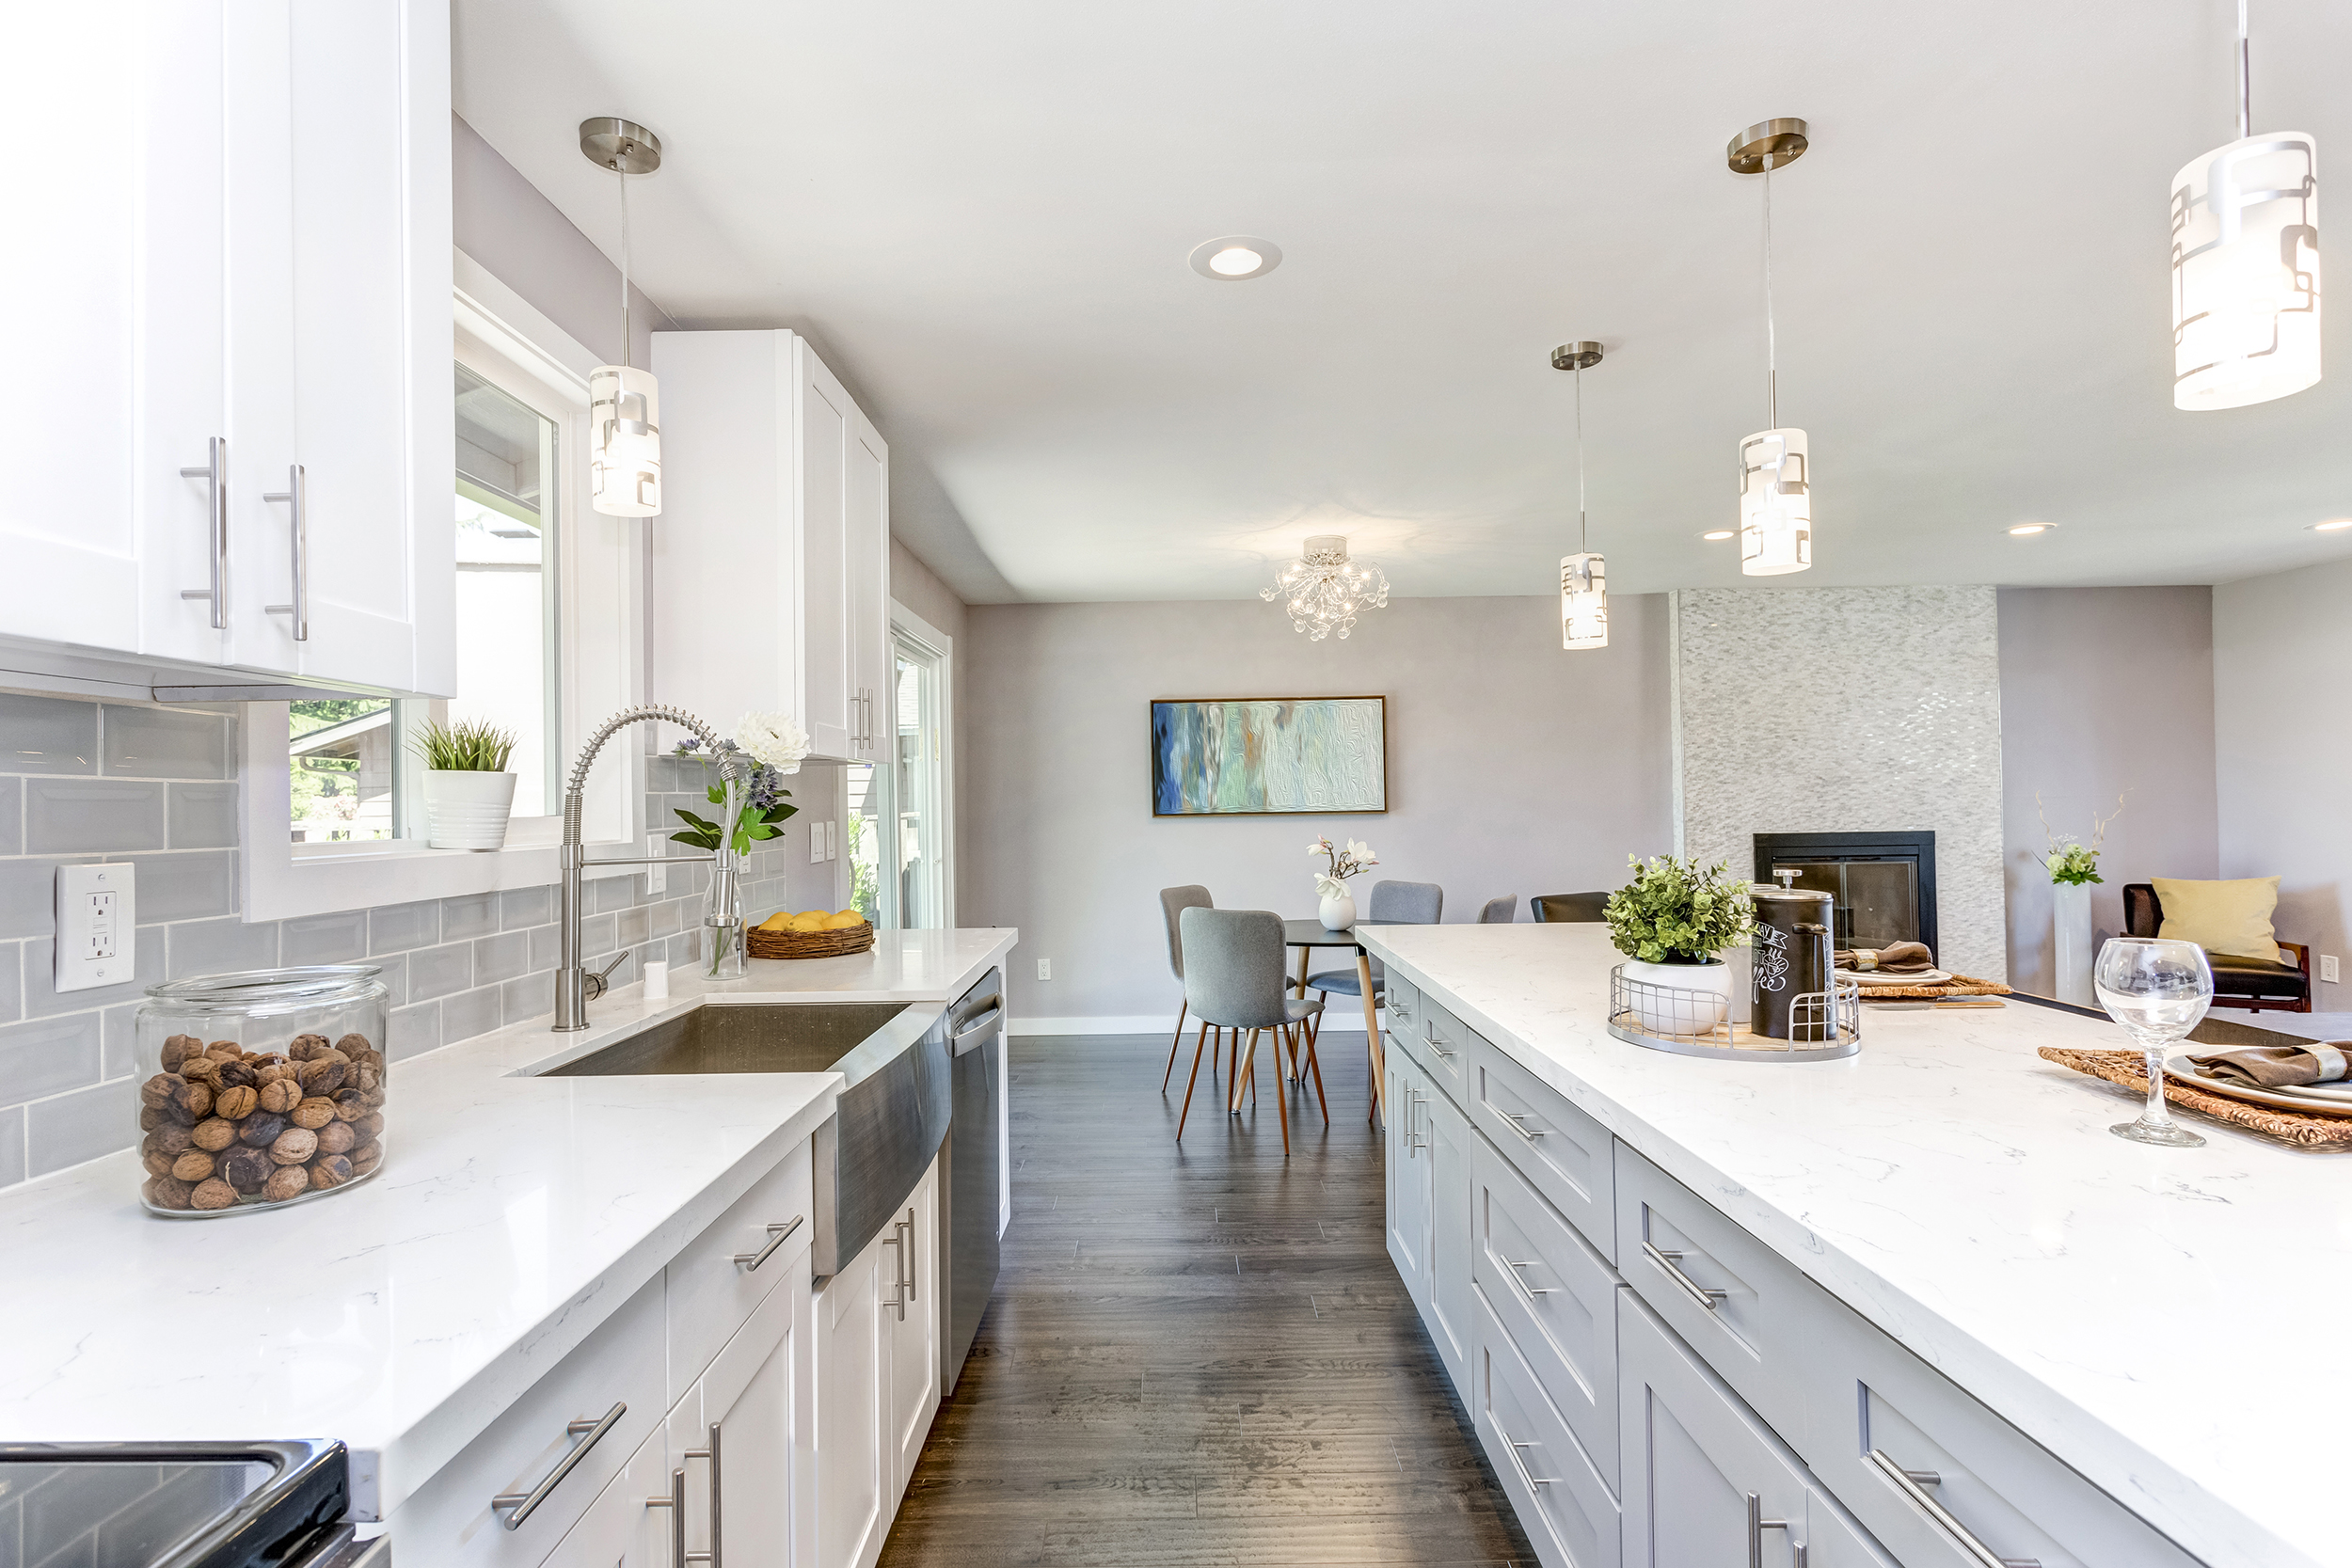 Creating Best Use Of Space For A Galley Kitchen Remodel